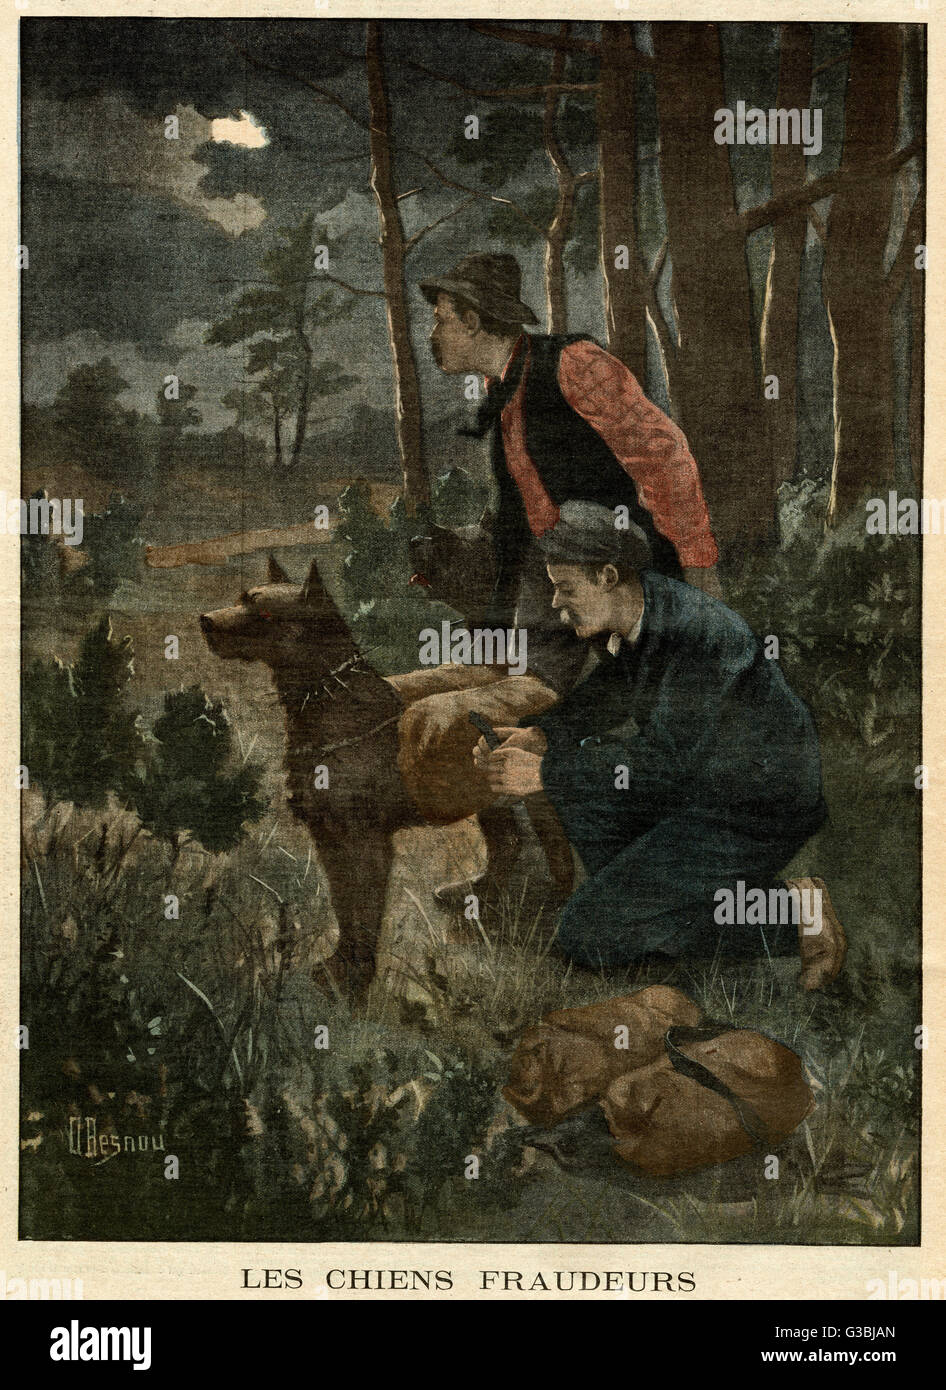 Dogs are employed by smugglers  to carry contraband goods  across the Belgian border.       Date: 1902 - Stock Image